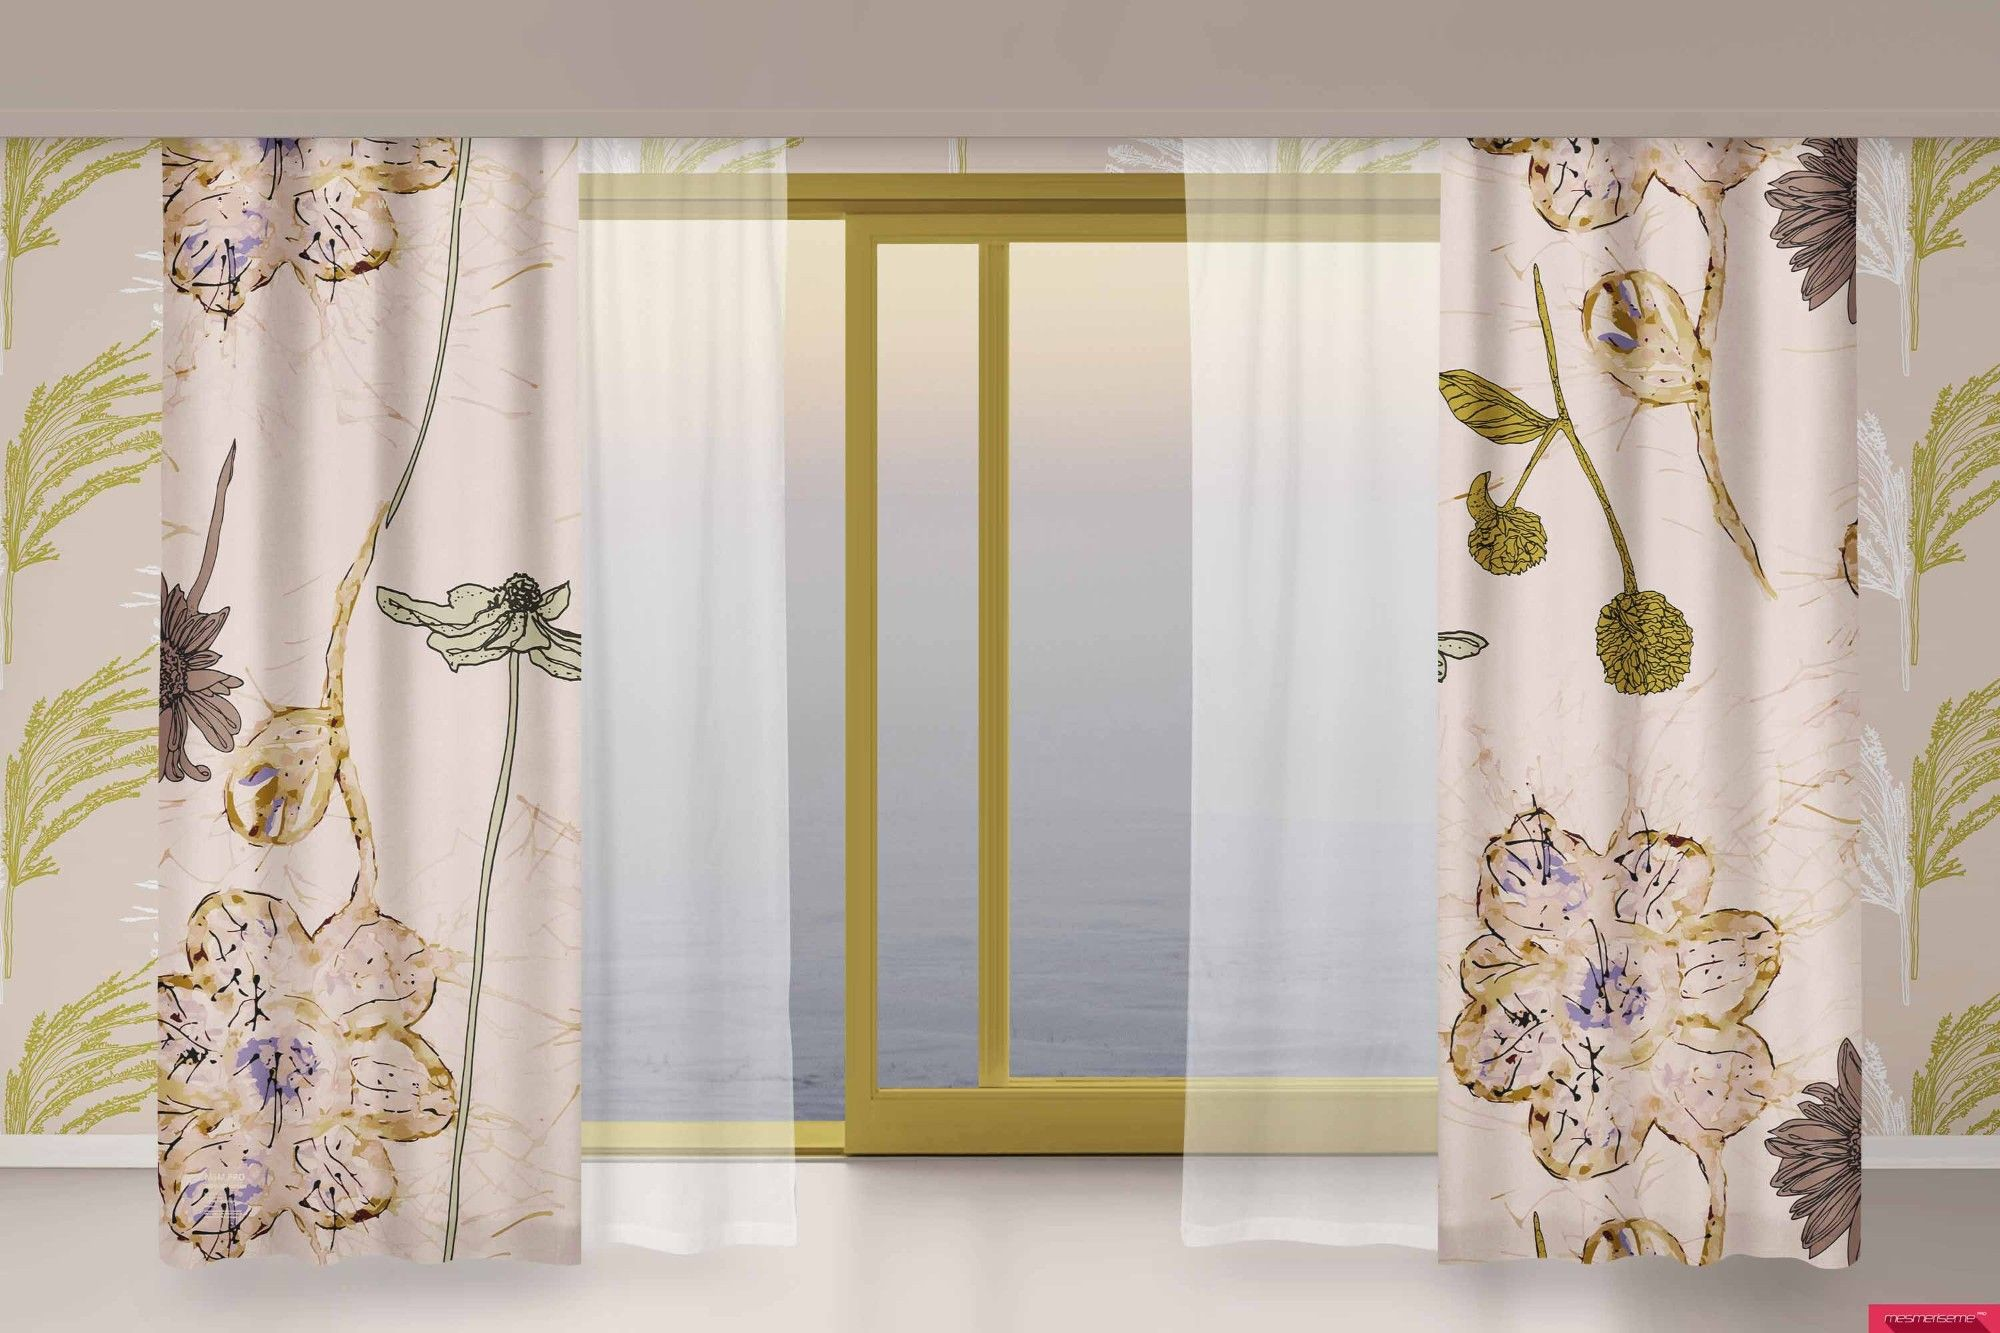 winter garden concept curtain wallpaper